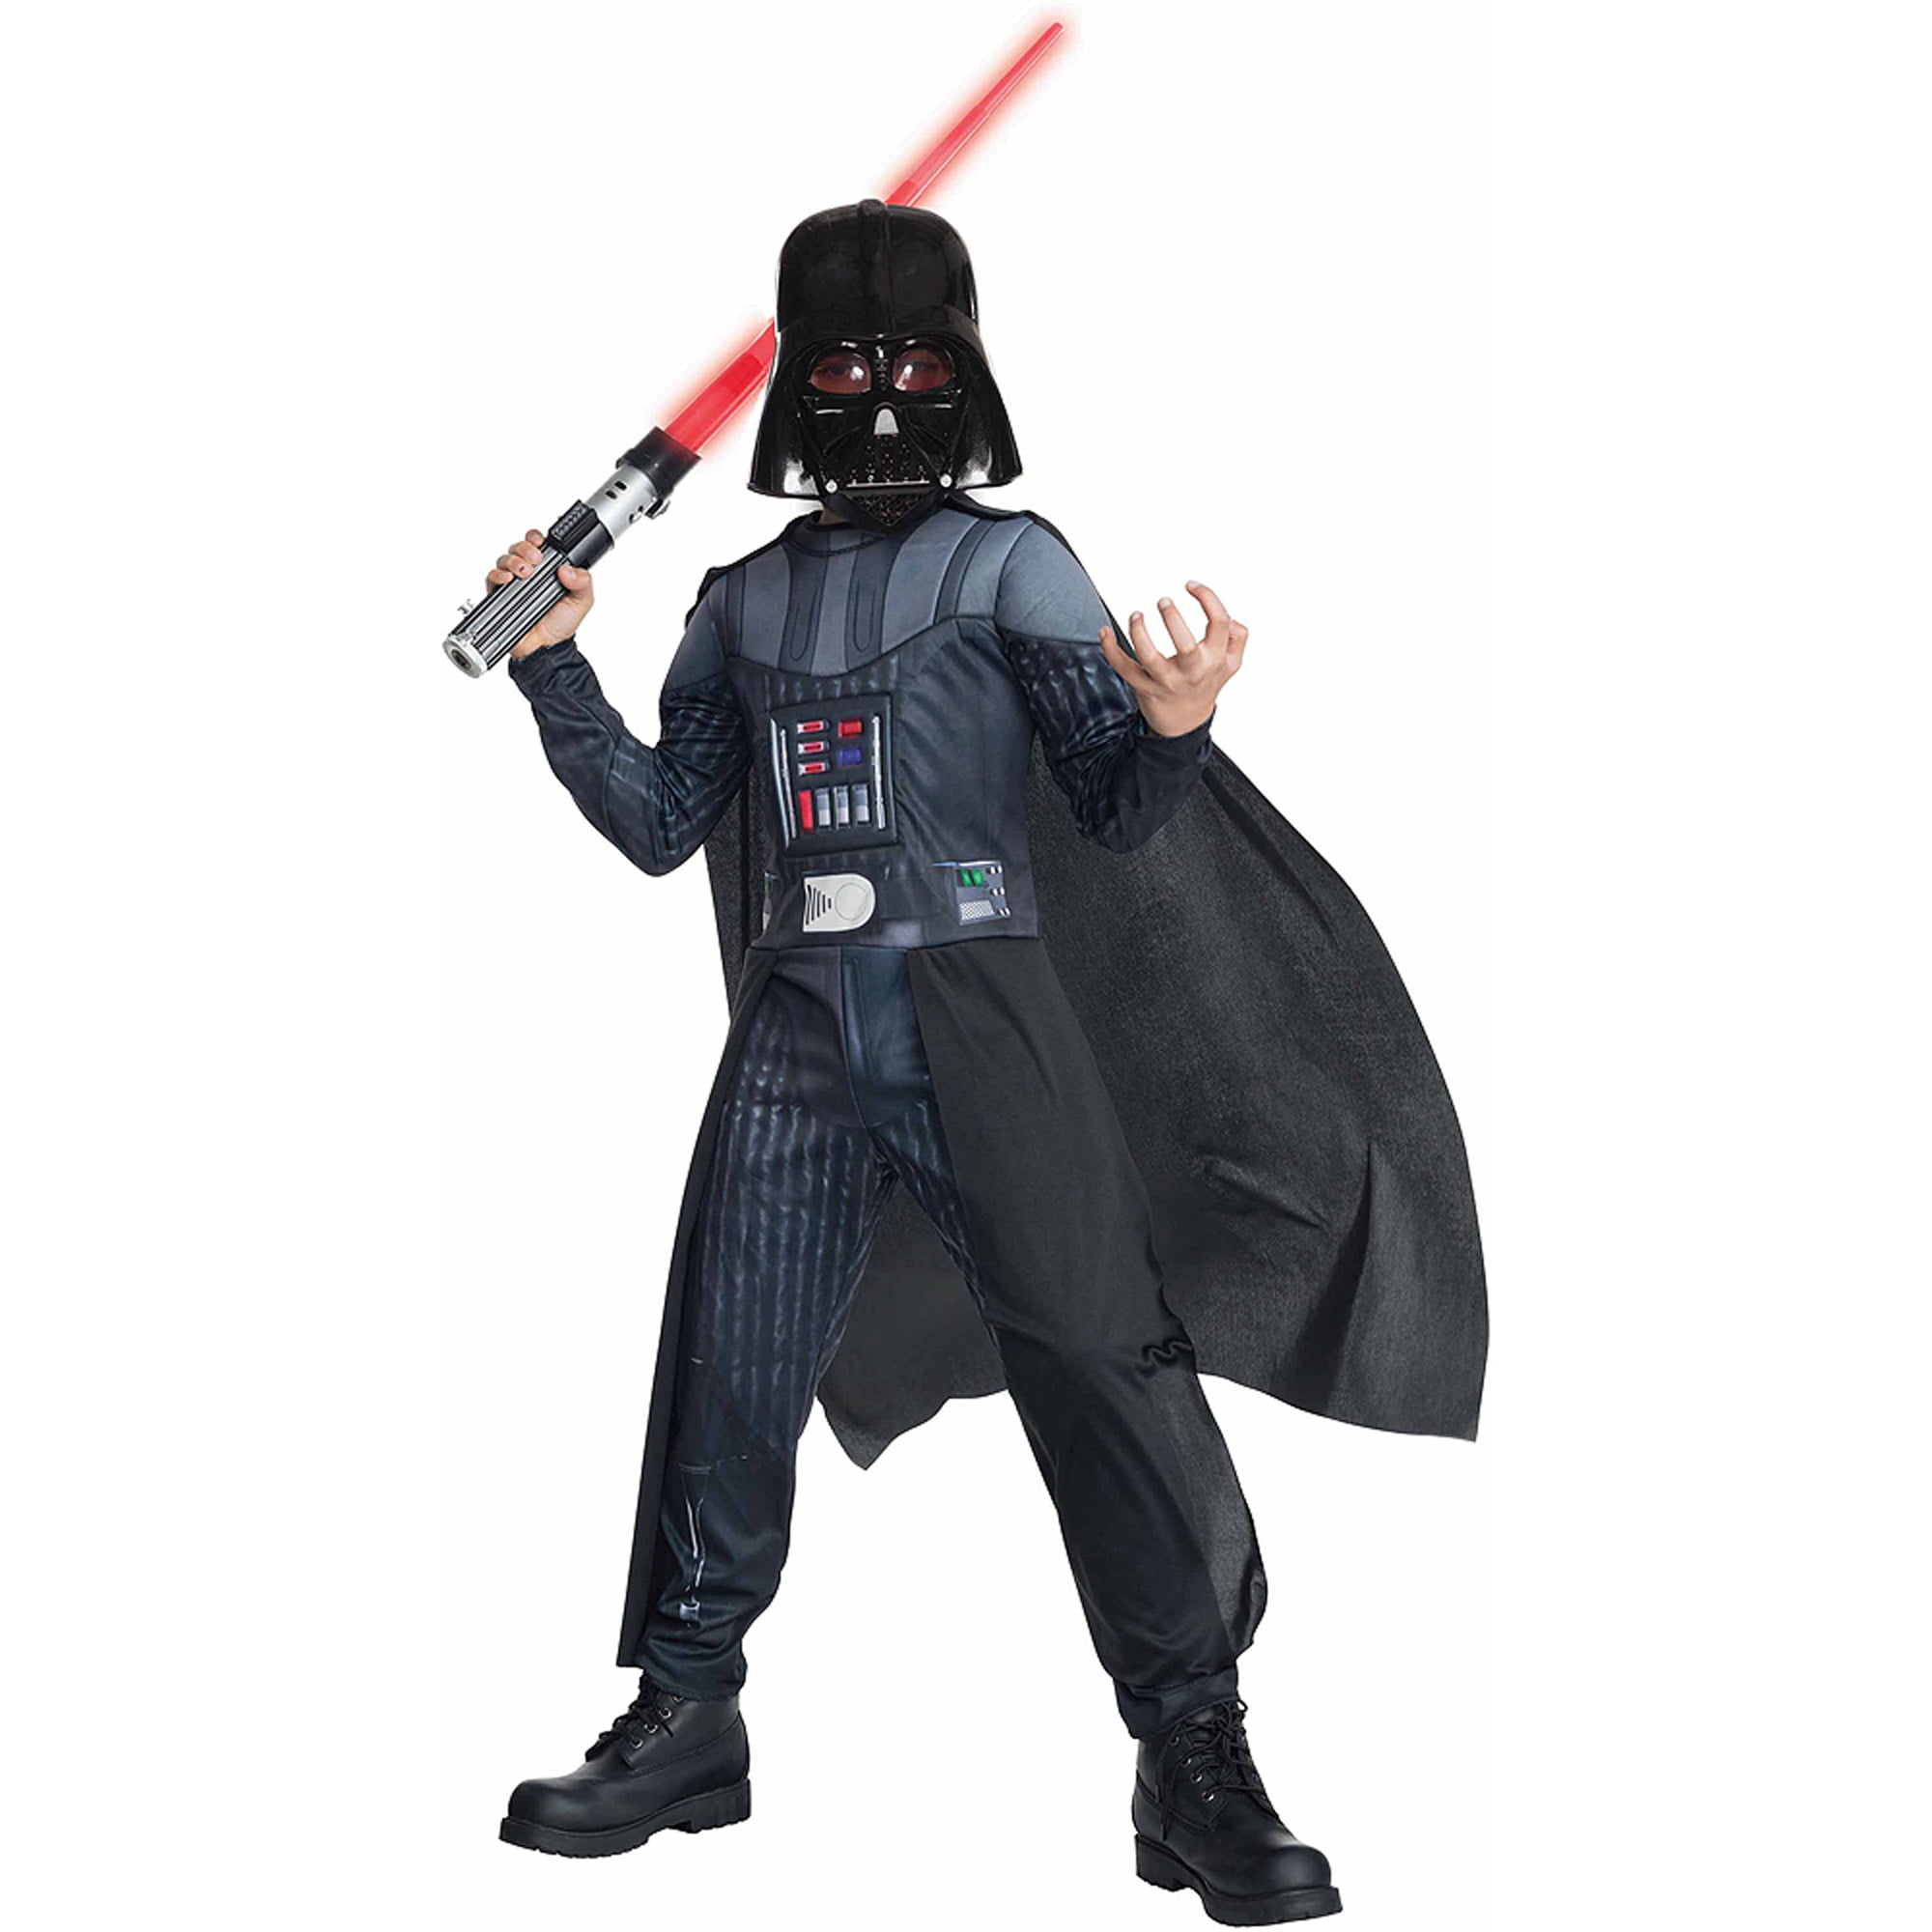 star wars darth vader child dress up role play costume walmartcom - Halloween Darth Vader